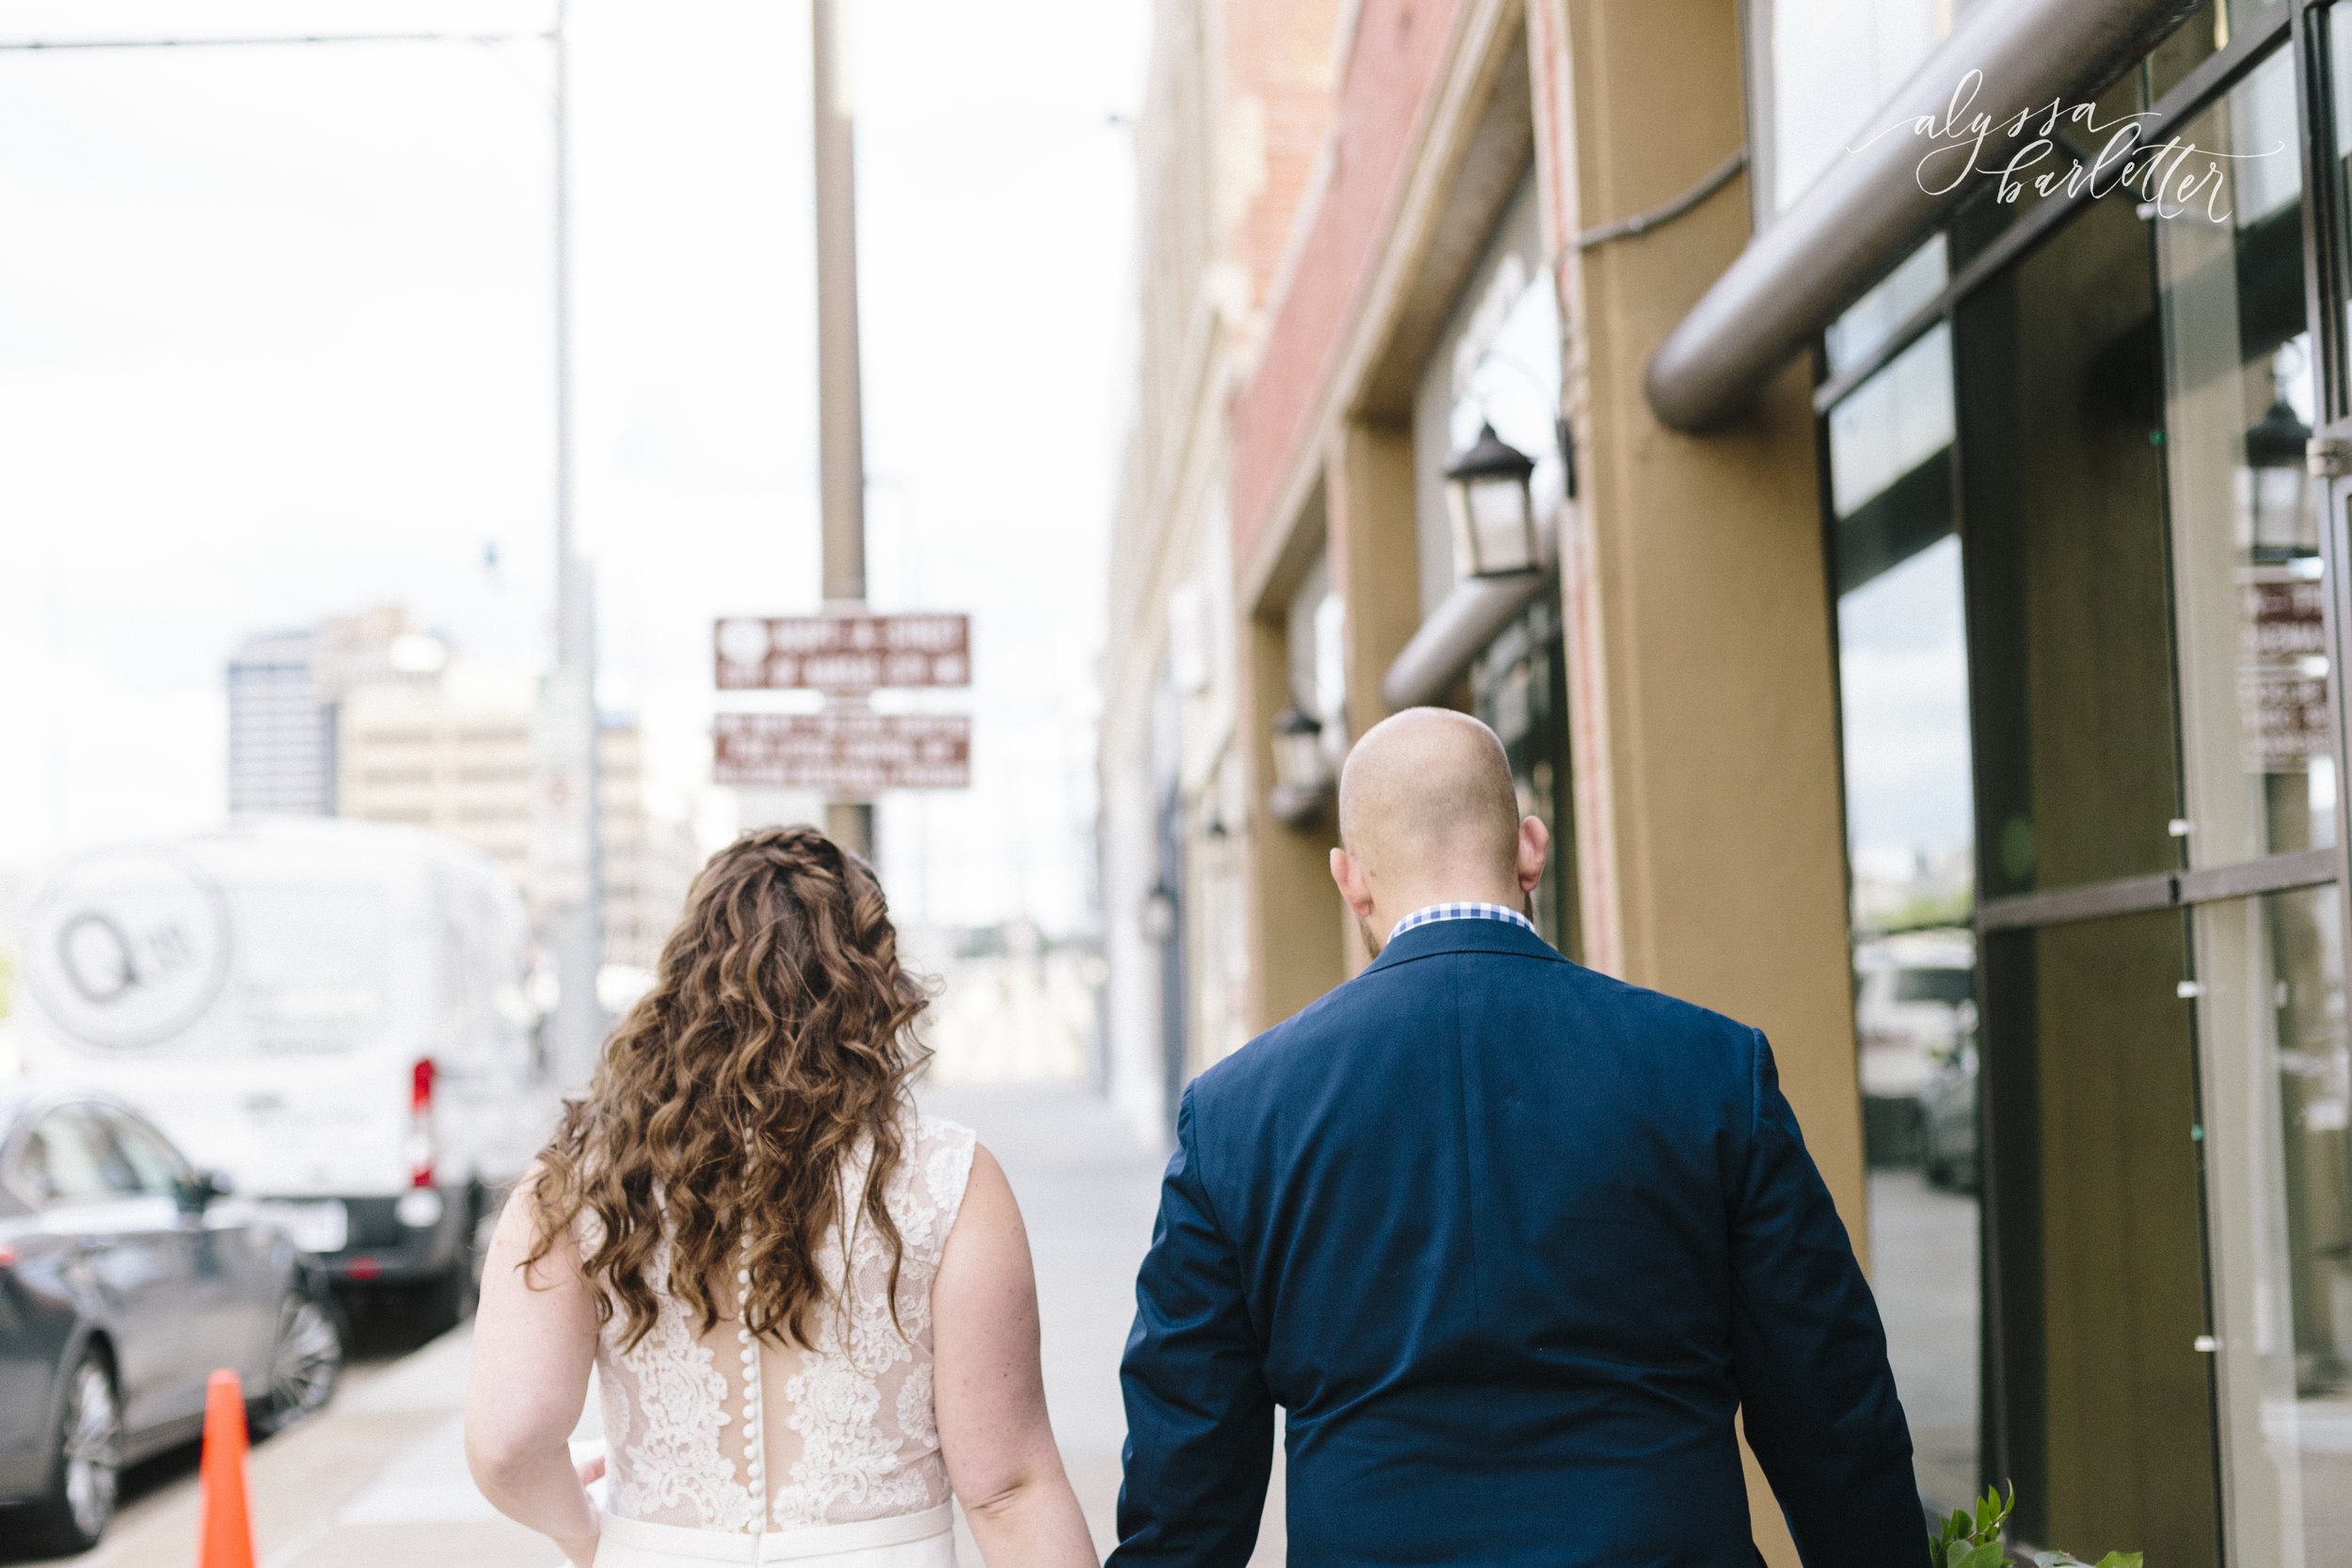 alyssa barletter photography kansas city wedding 2016 main courtney and brian-1-40.jpg